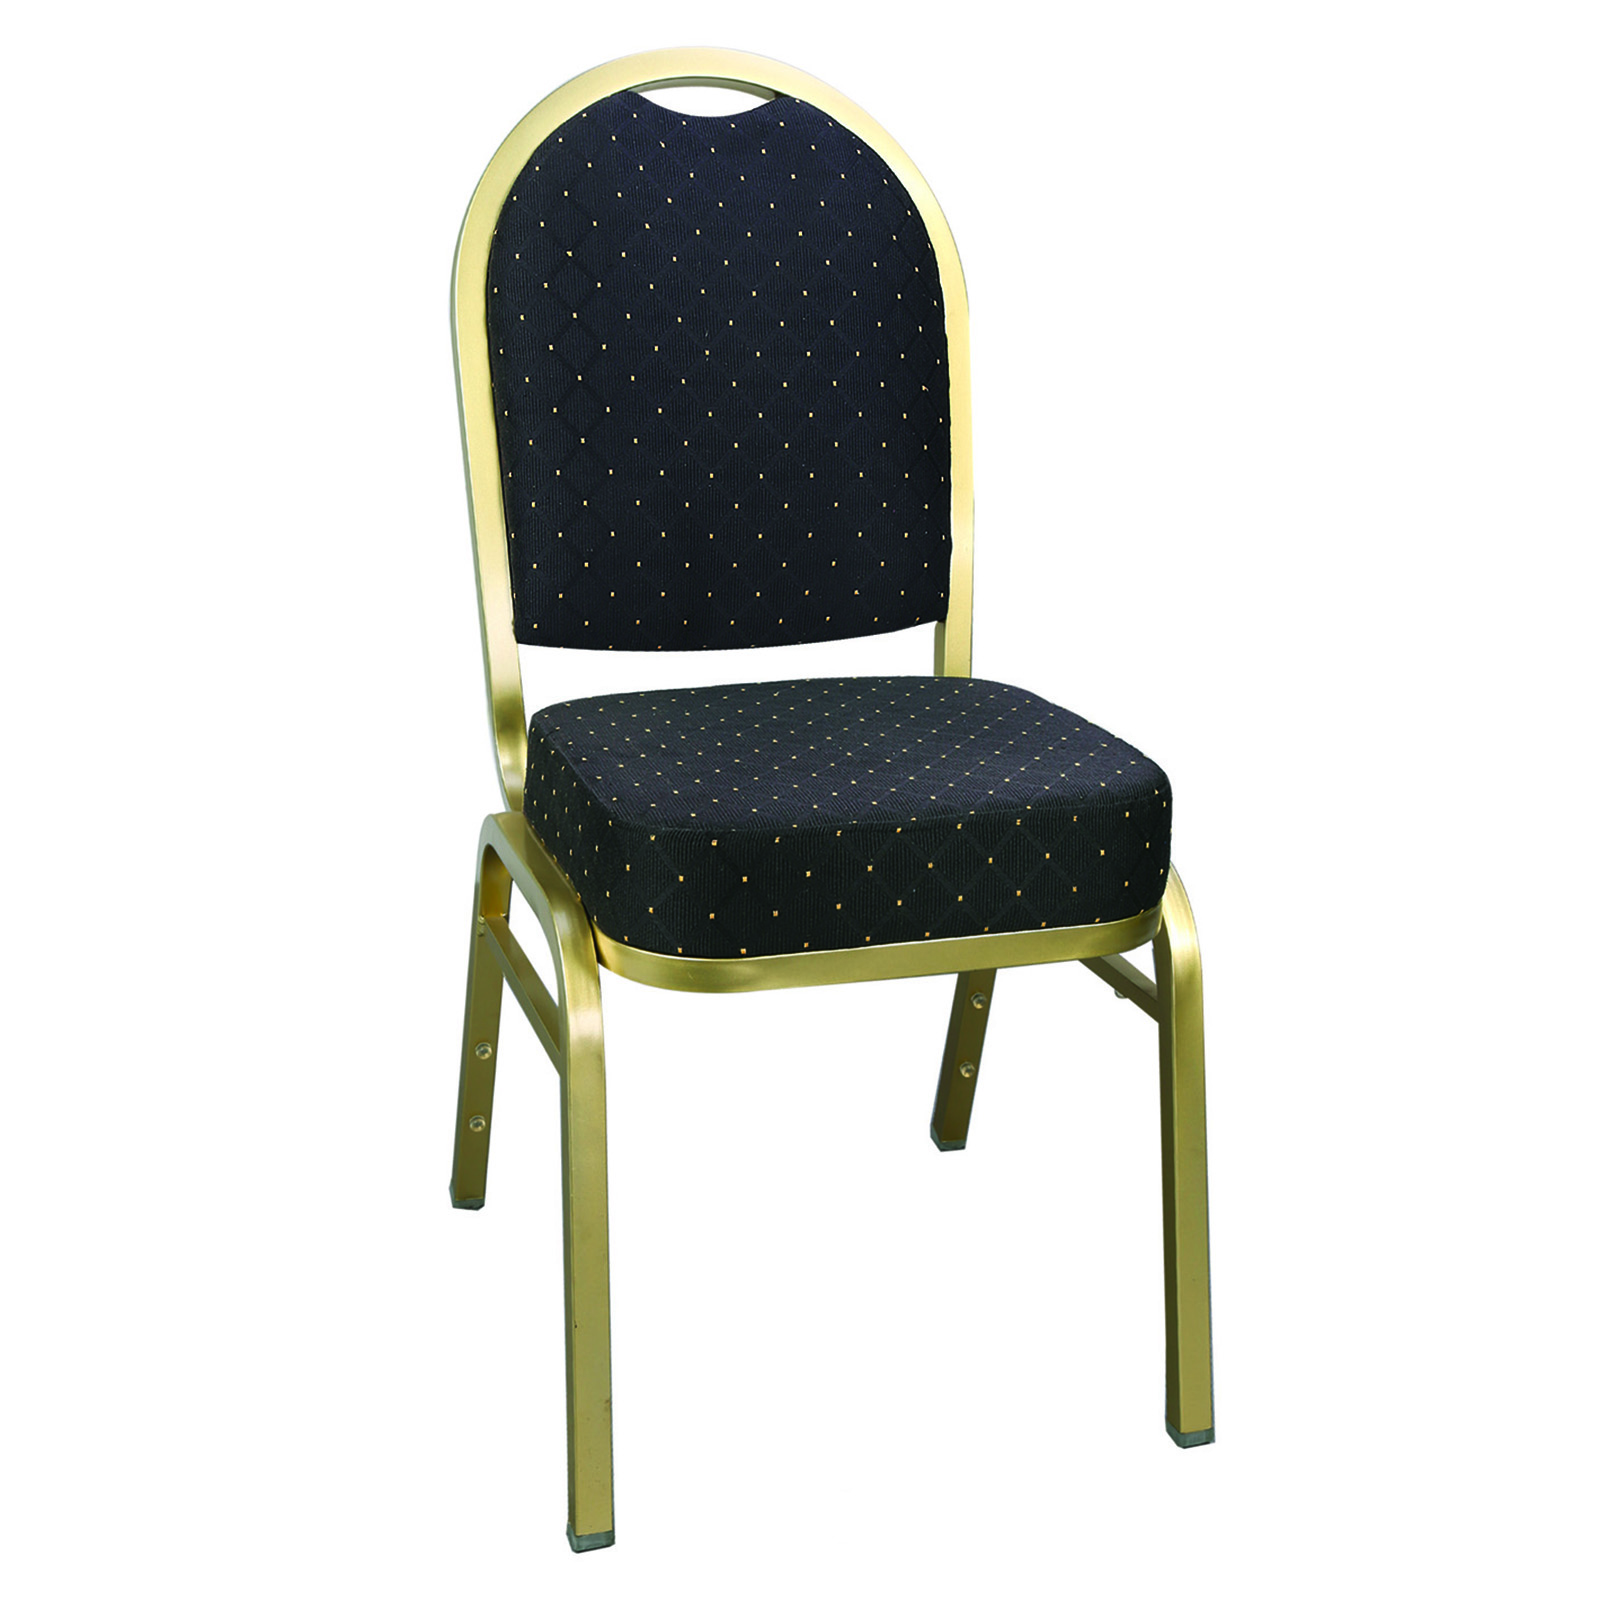 JustChair Manufacturing A80118 GR1 chair, side, stacking, indoor